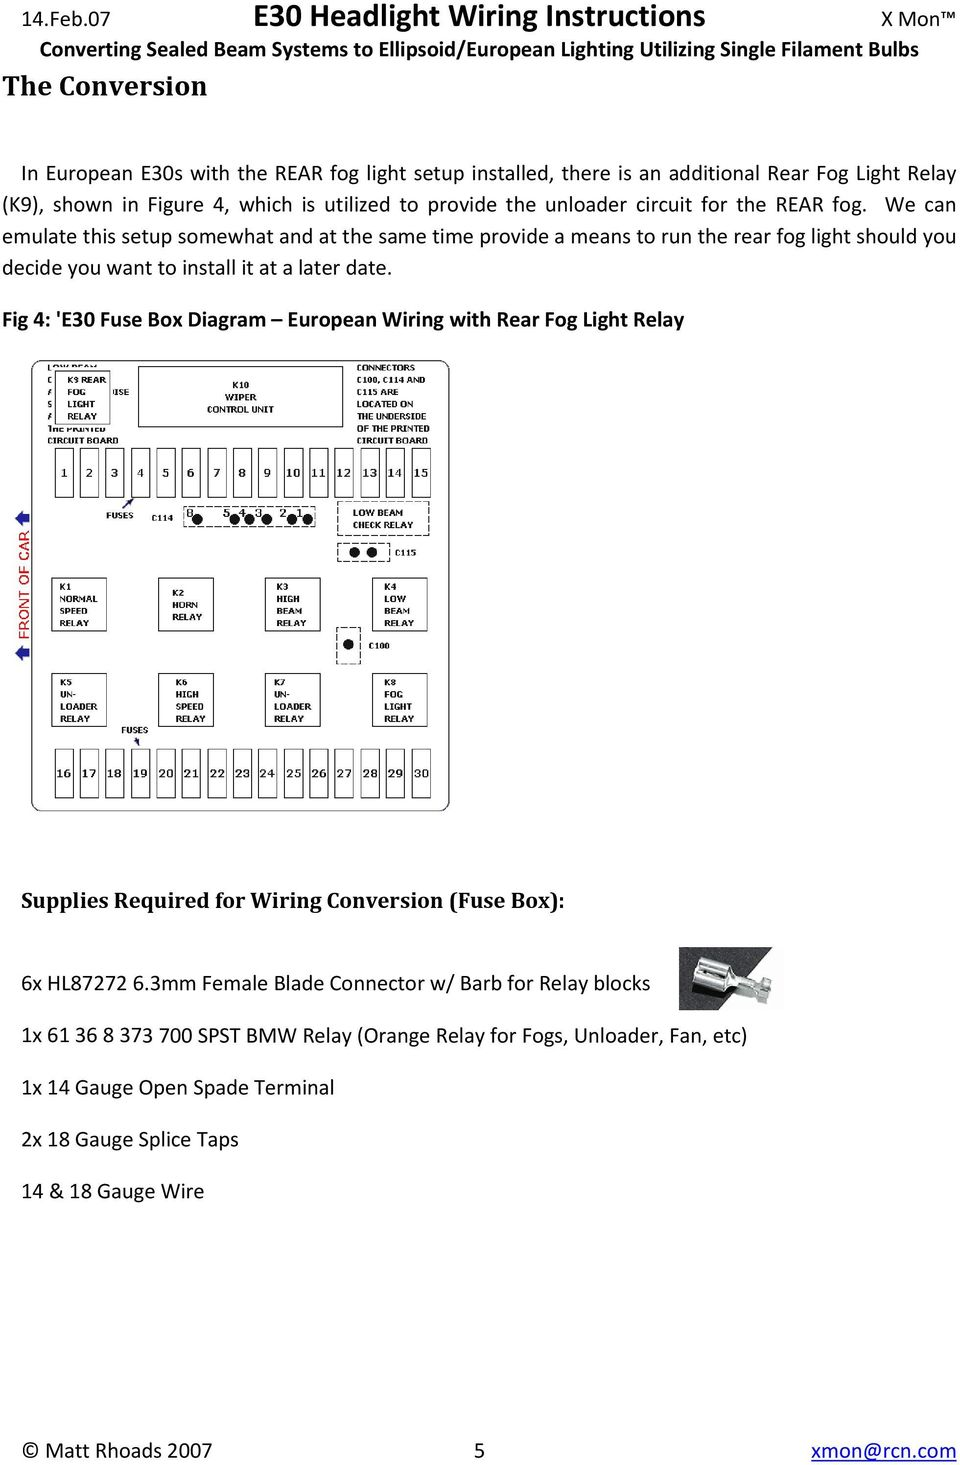 E30 Headlight Wiring Instructions Converting Sealed Beam Systems To 2007 Toyota Fj Cruiser Fuse Box Diagram Fig 4 European With Rear Fog Light Relay Supplies